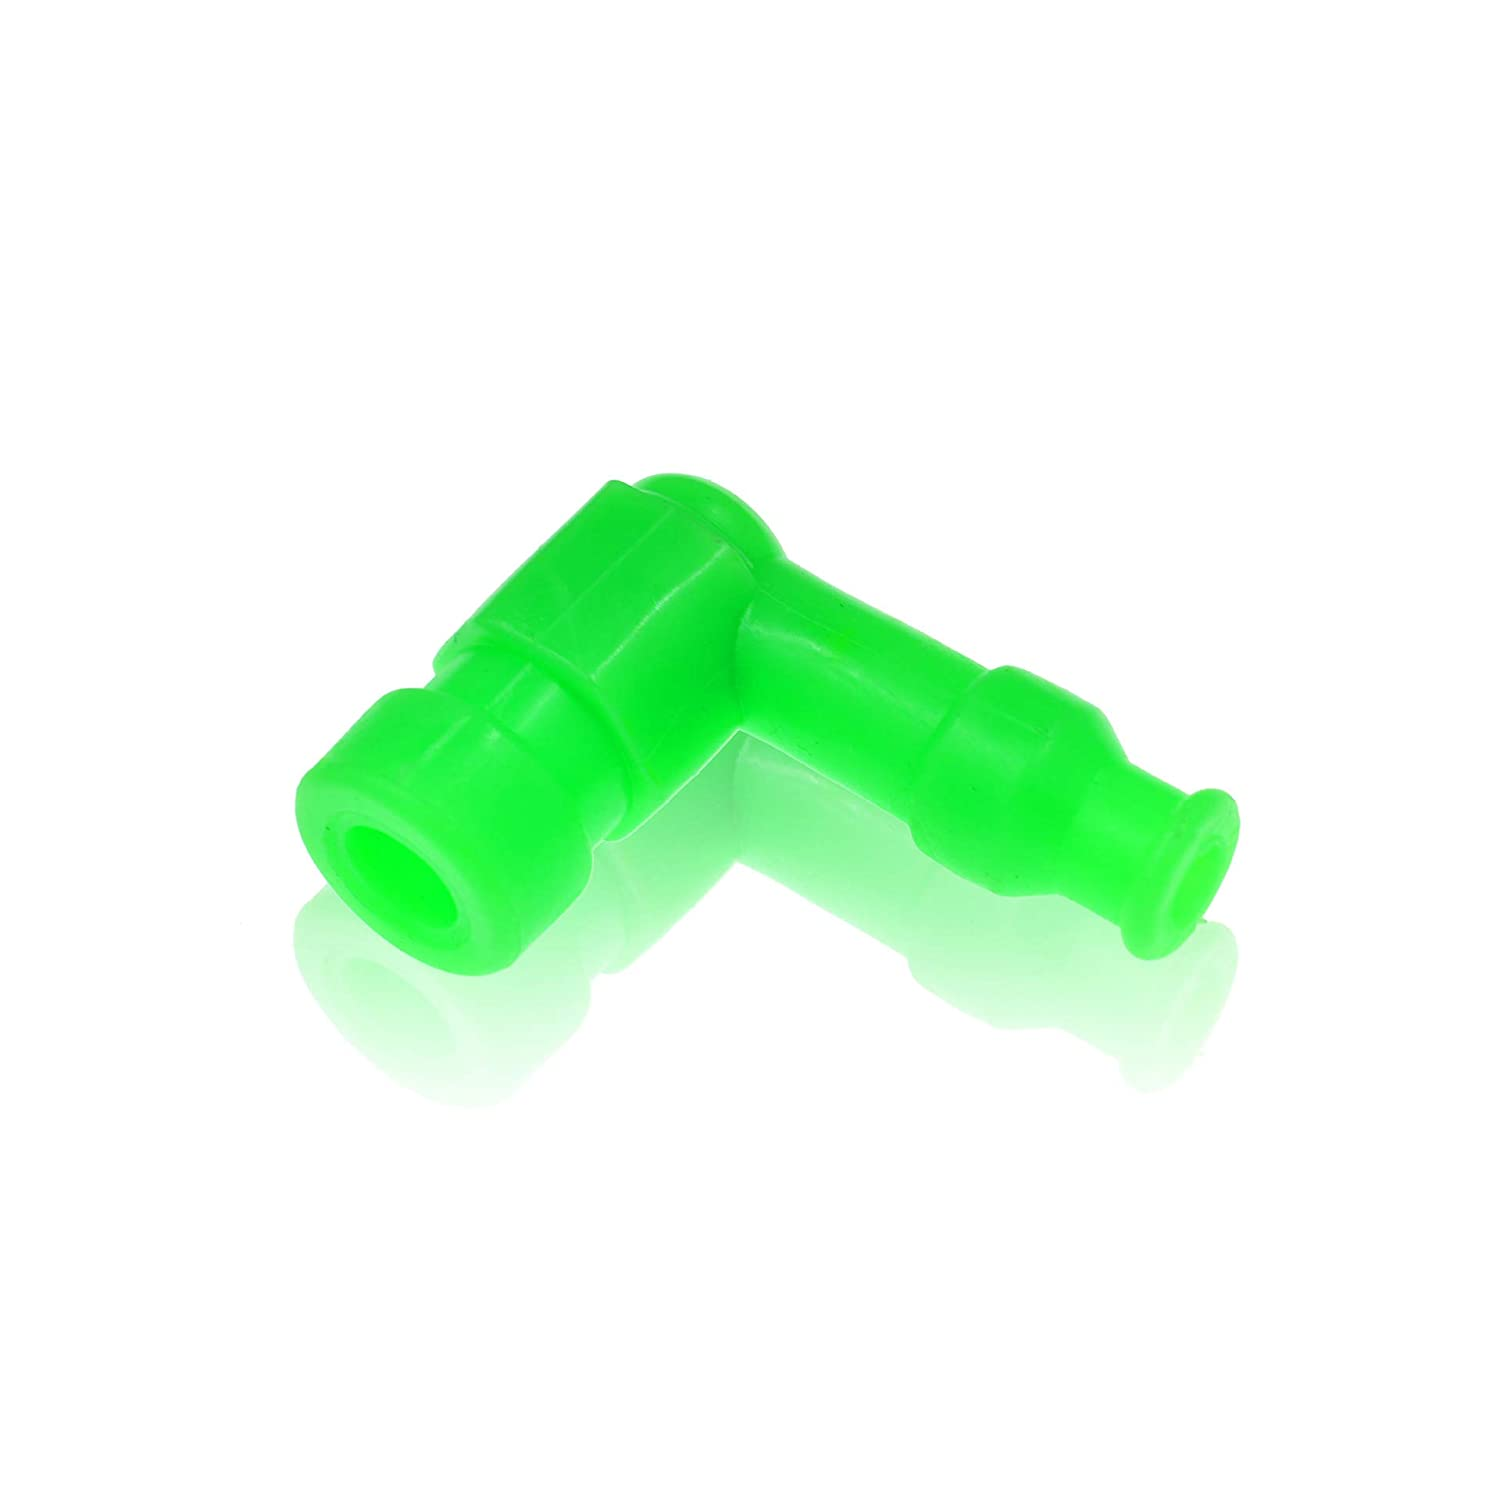 XuBa High Perreplacement formance Spark Plug Cap replacement for 50cc 110cc 125cc 140cc 150cc 160cc green